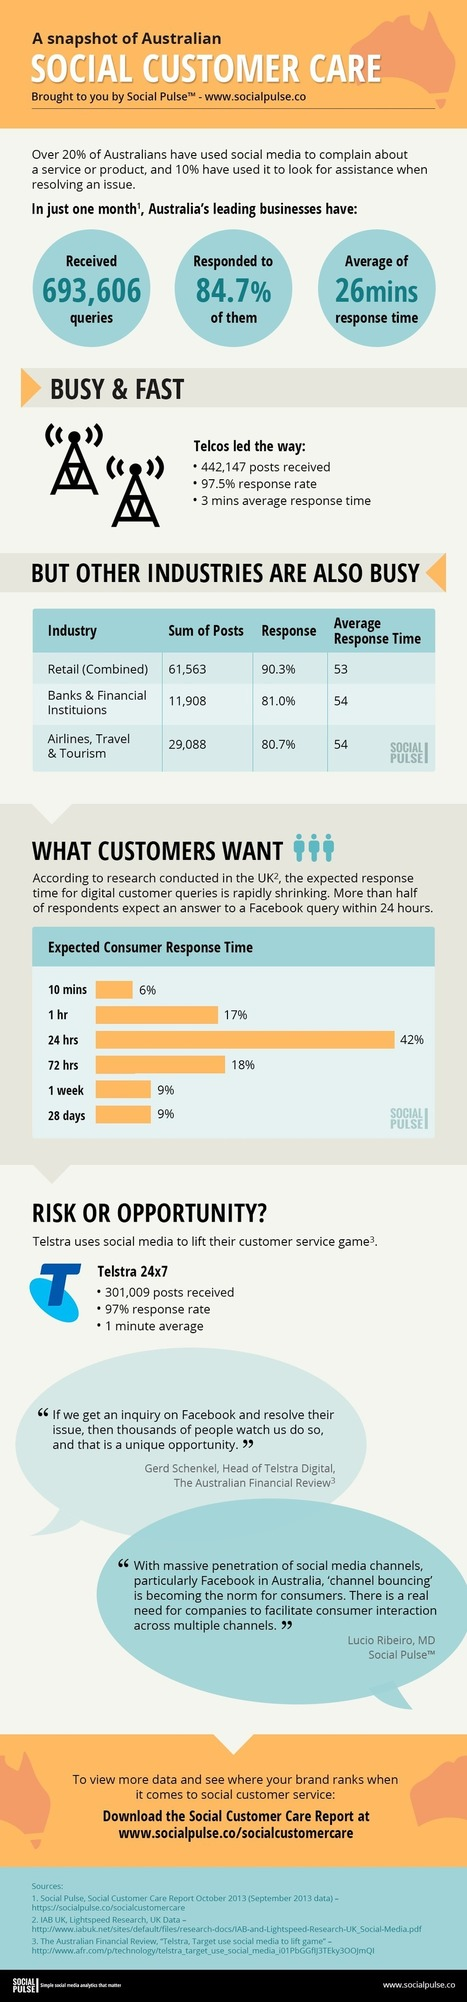 Infographic: Telcos lead the way in responding to social media queries | Personal branding and social media | Scoop.it